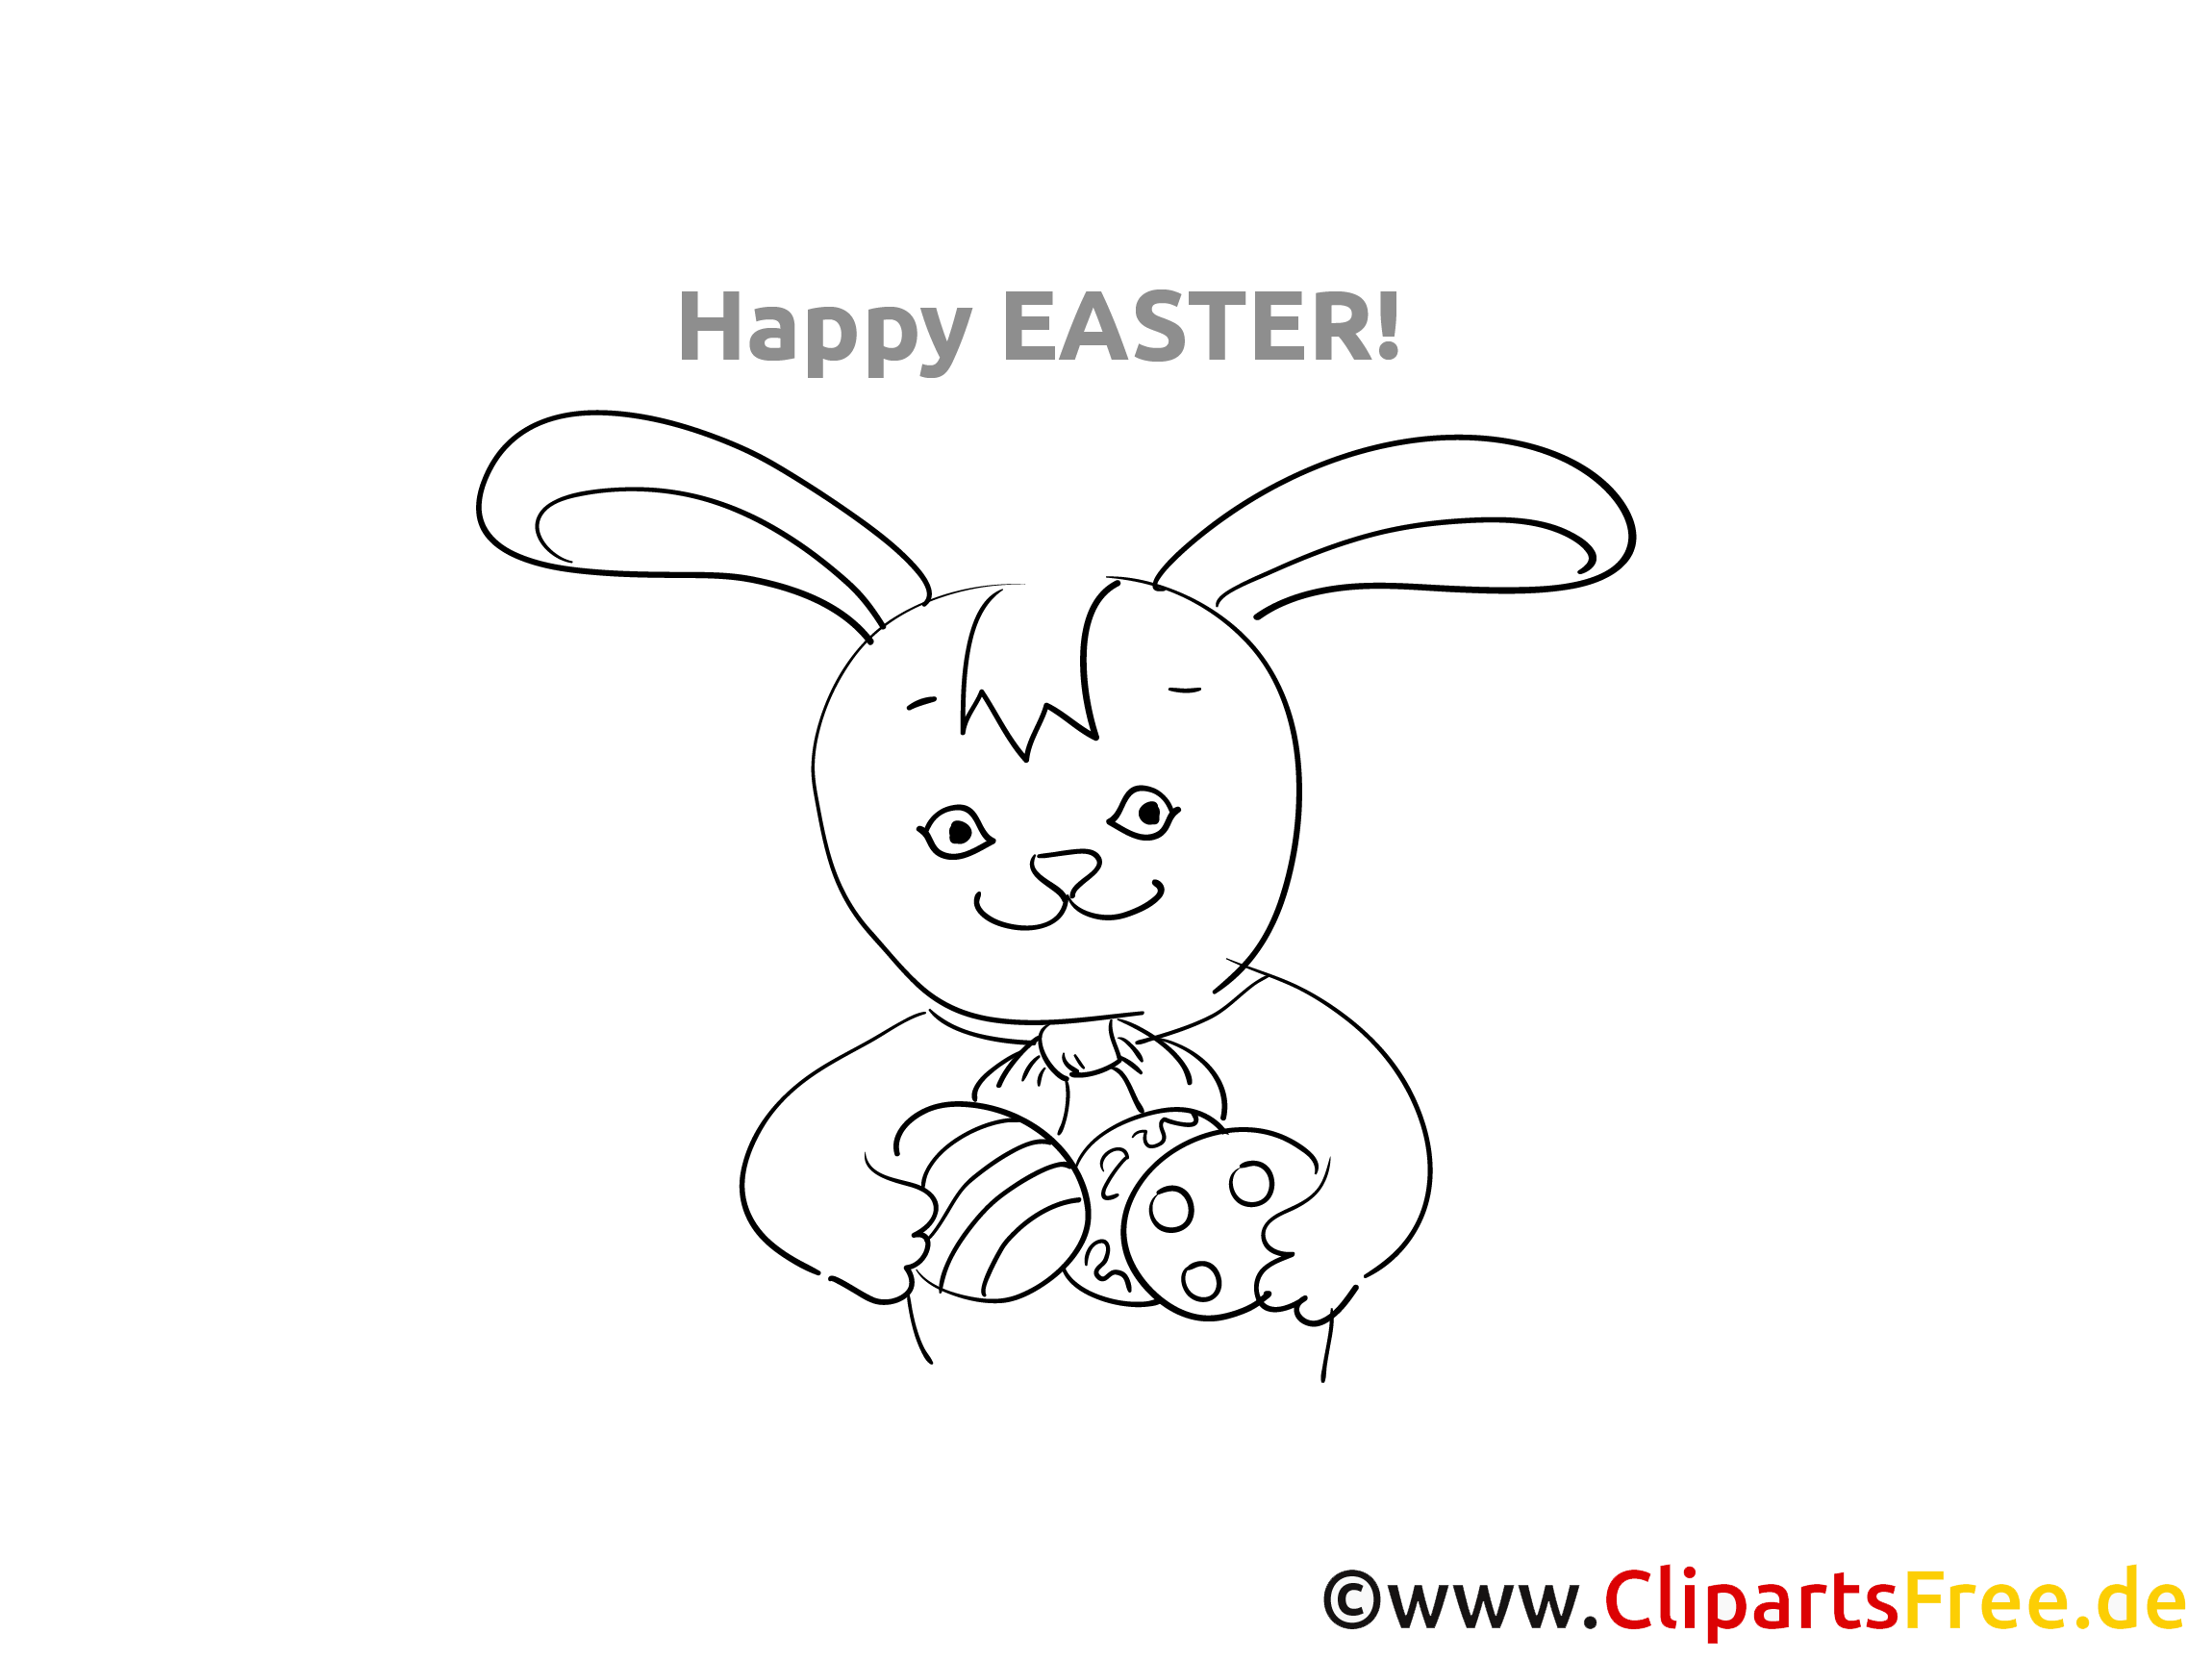 Easter Rabbit Coloring Sheet PDF for free